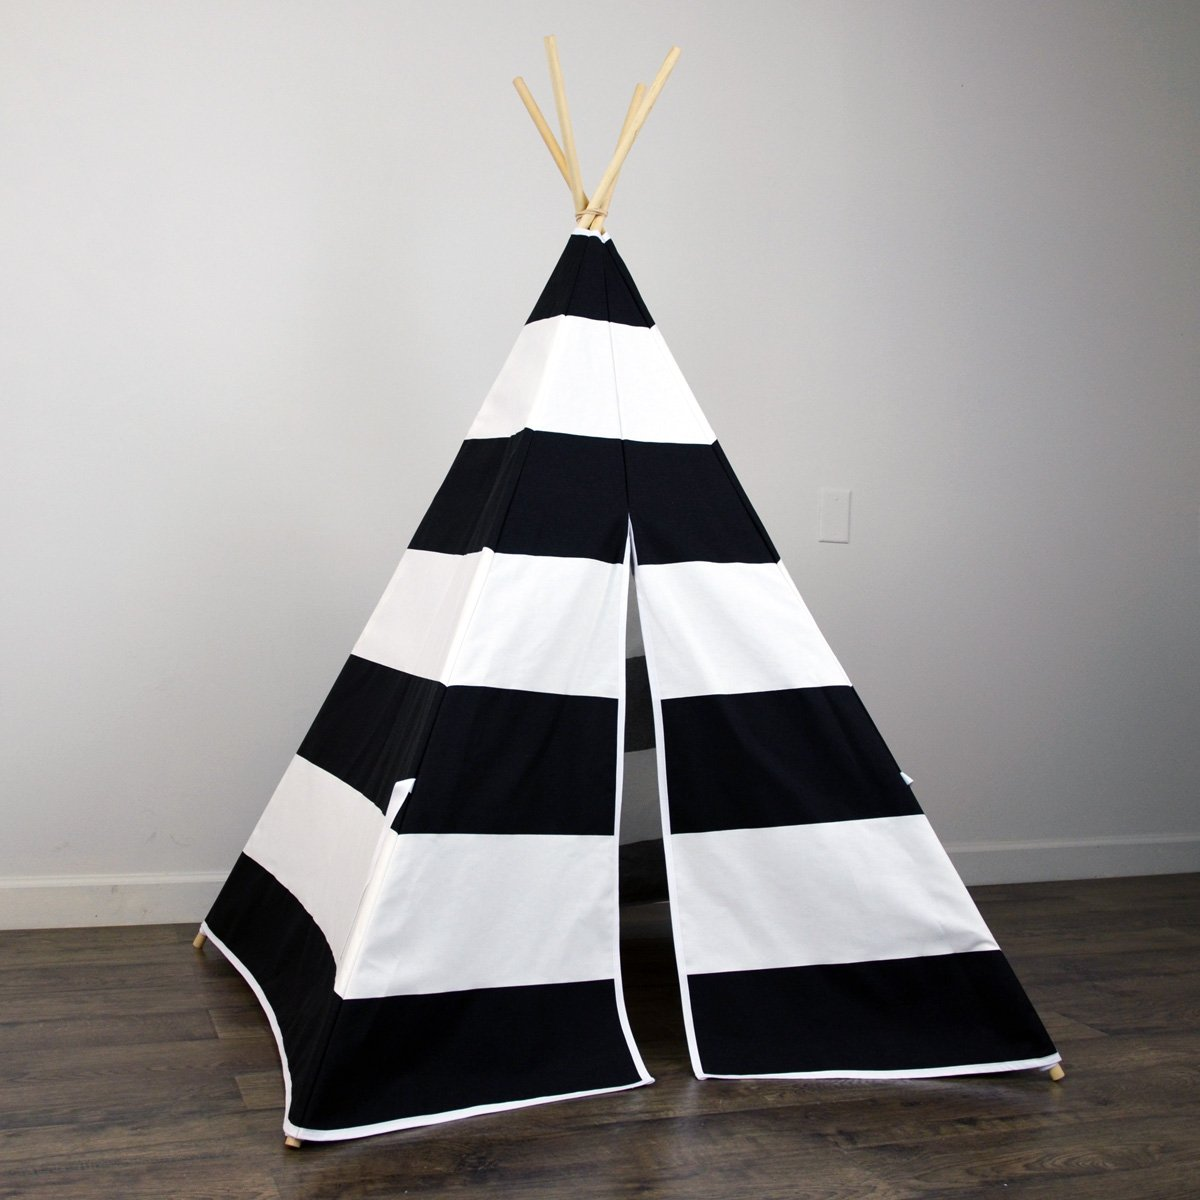 Design Kids Teepee amazon com kids teepee tent in black white stripe includes large canvas and wooden poles great gift idea for bo